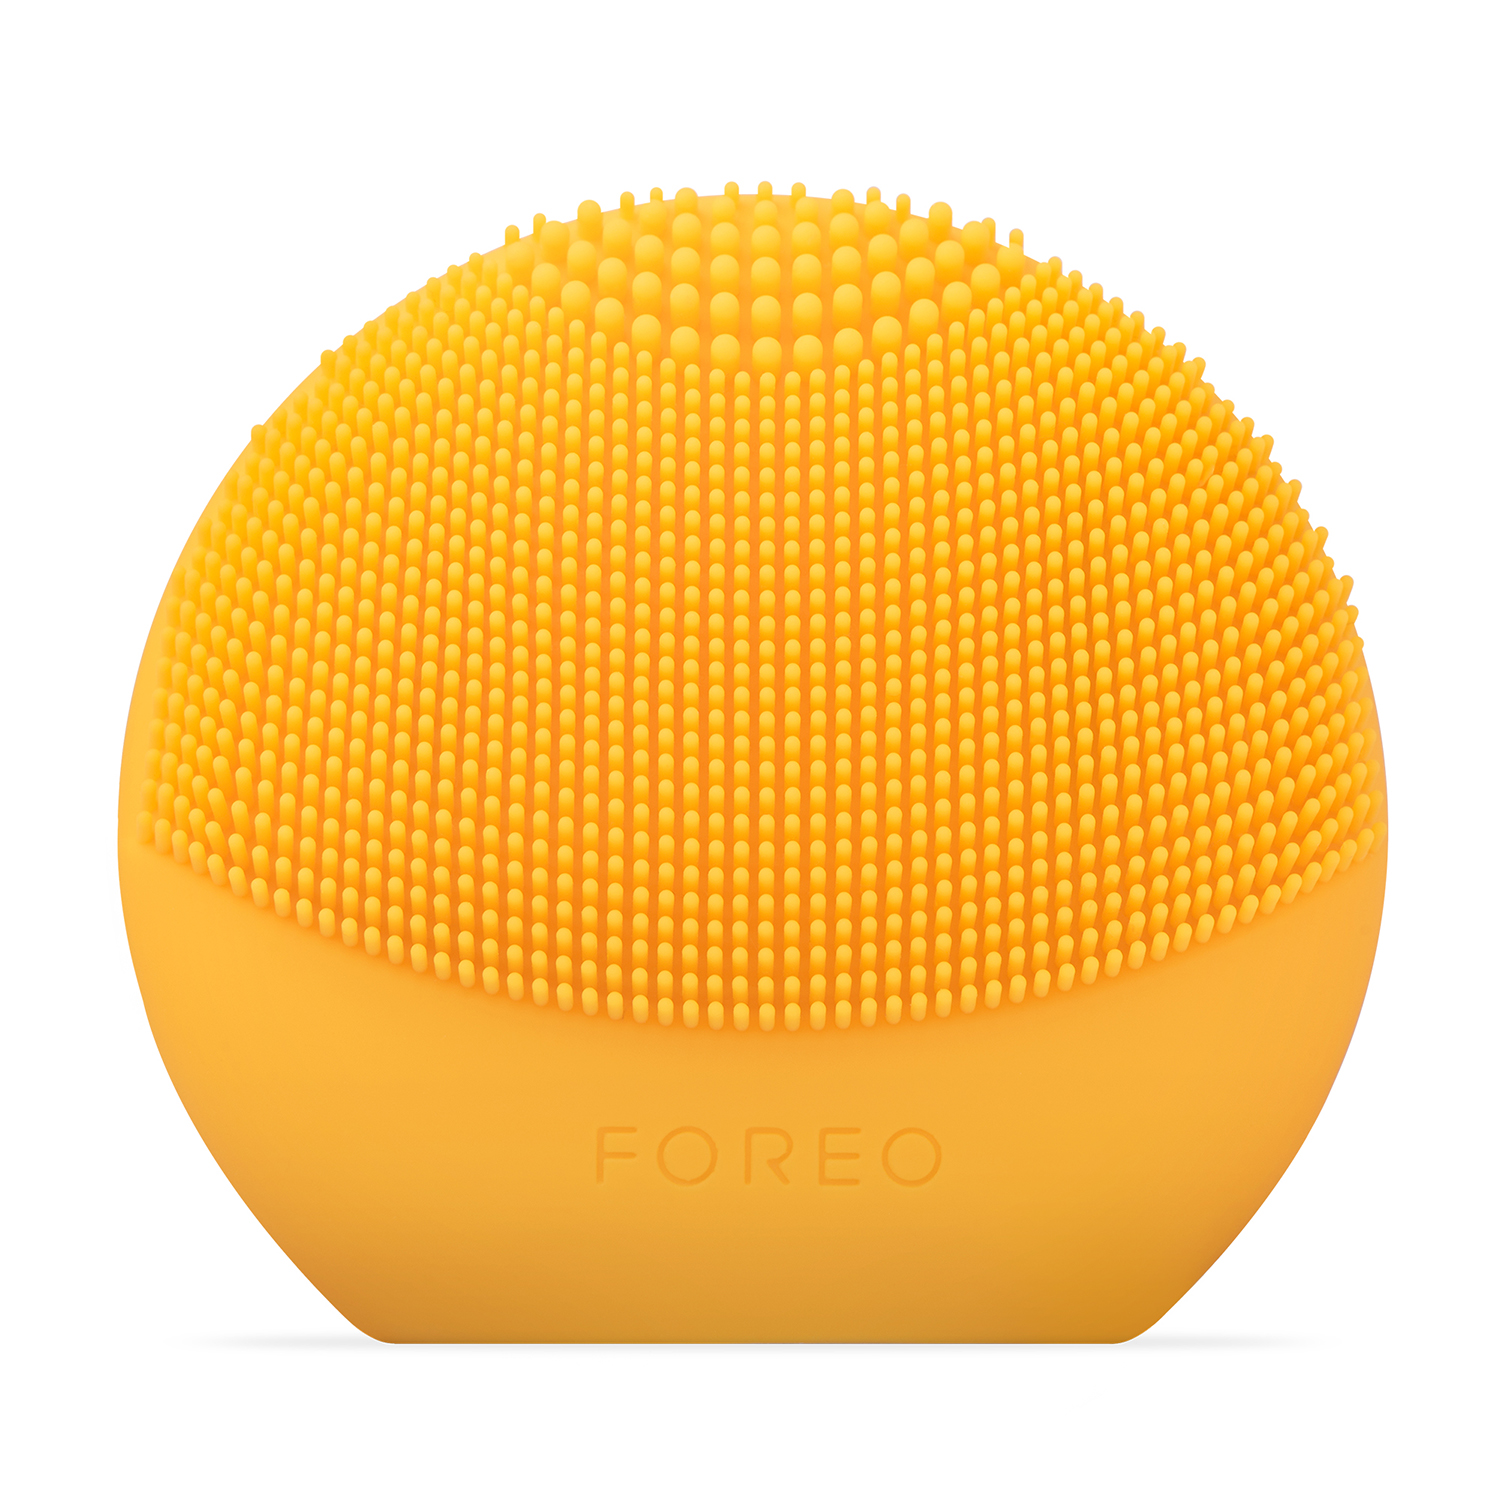 Luna Fofo Smart Facial Cleansing Brush Sunflower Yellow